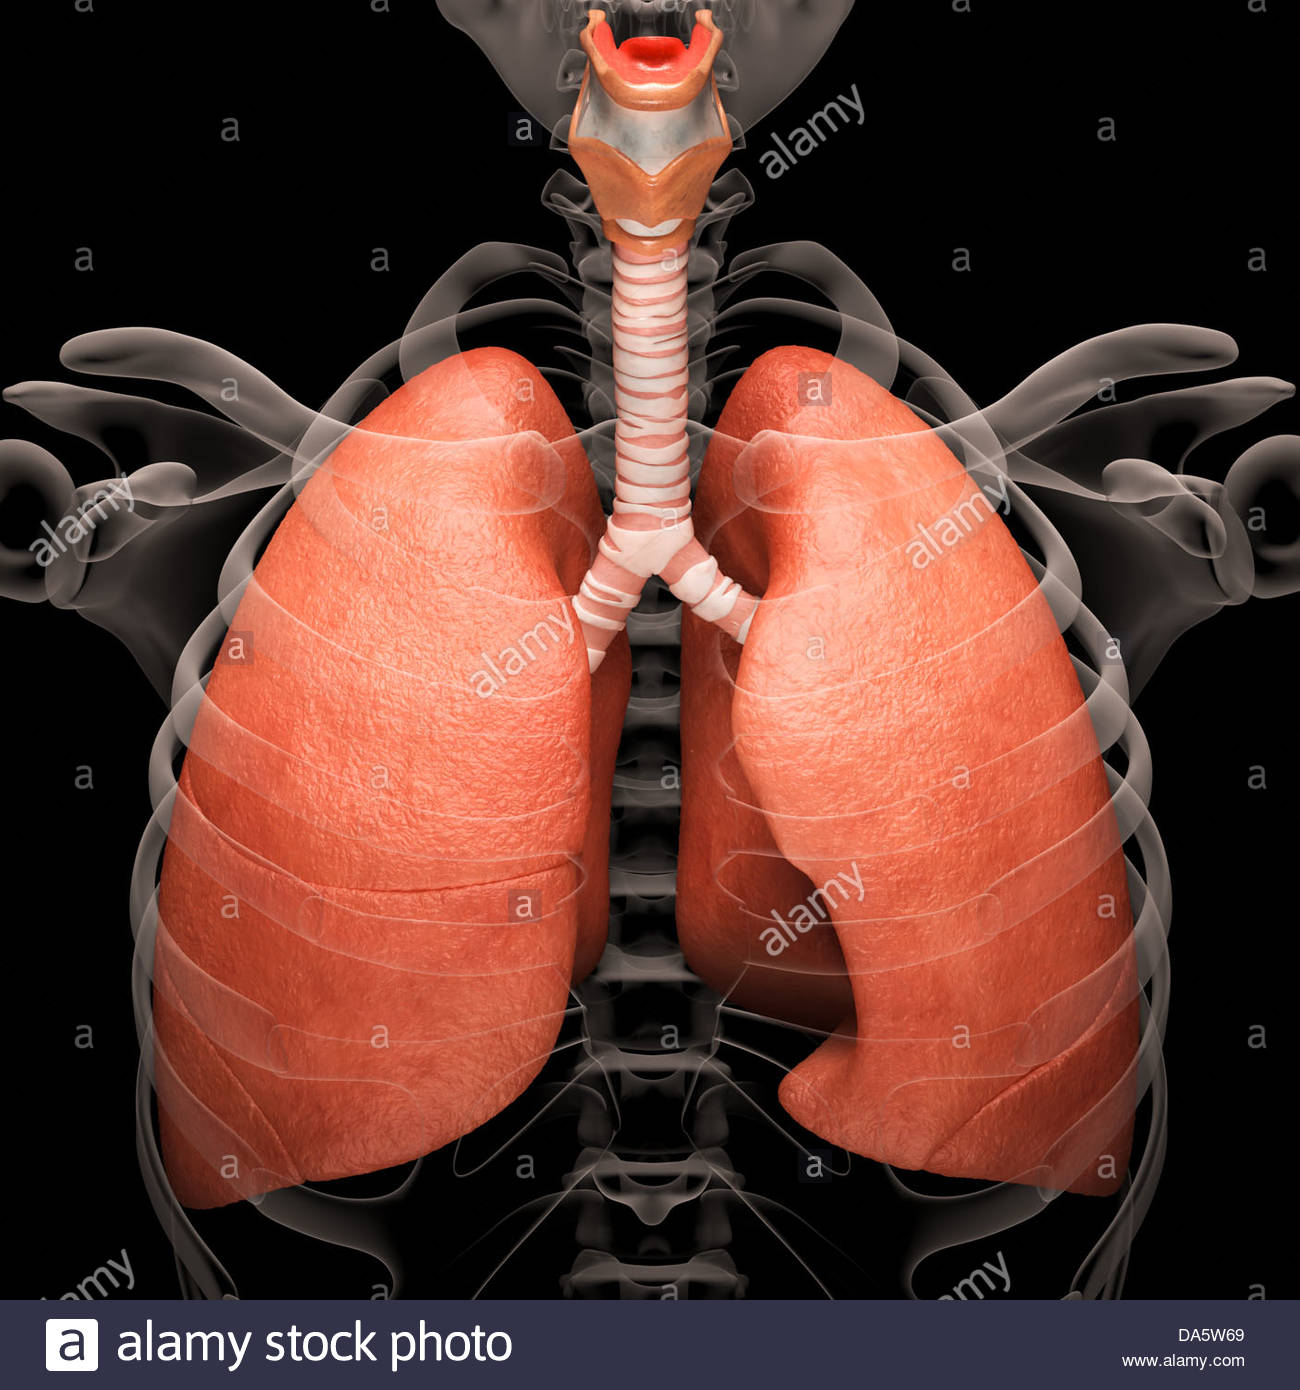 Digital medical illustration depicting the human respiratory system. Transparent skeleton reveals the respiratory Stock Photo